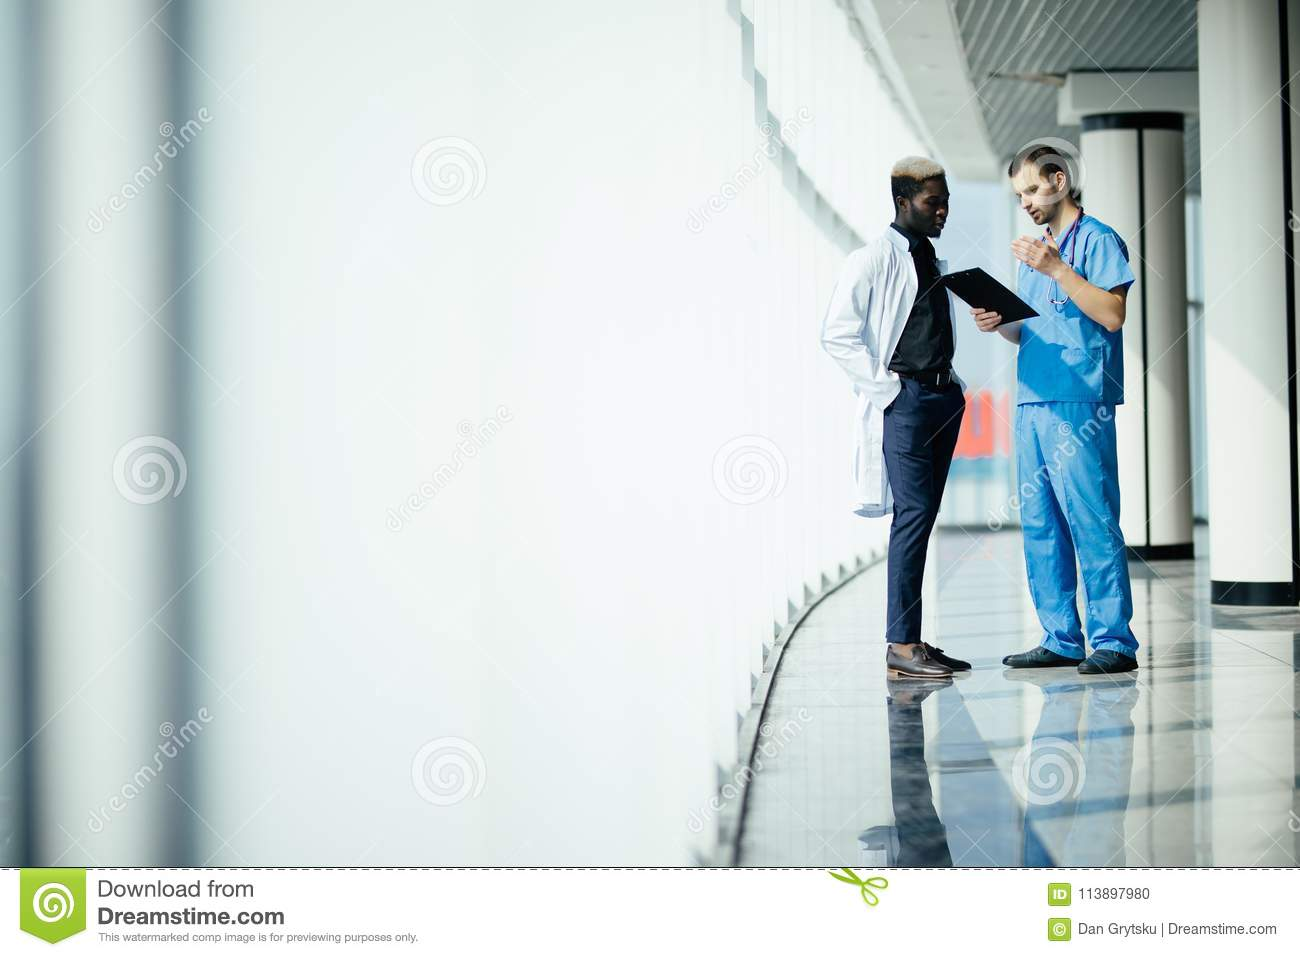 Medical multiethnic staff having discussion in a hospital hallway. Two doctors working in a medical clinic. Two hospital workers d